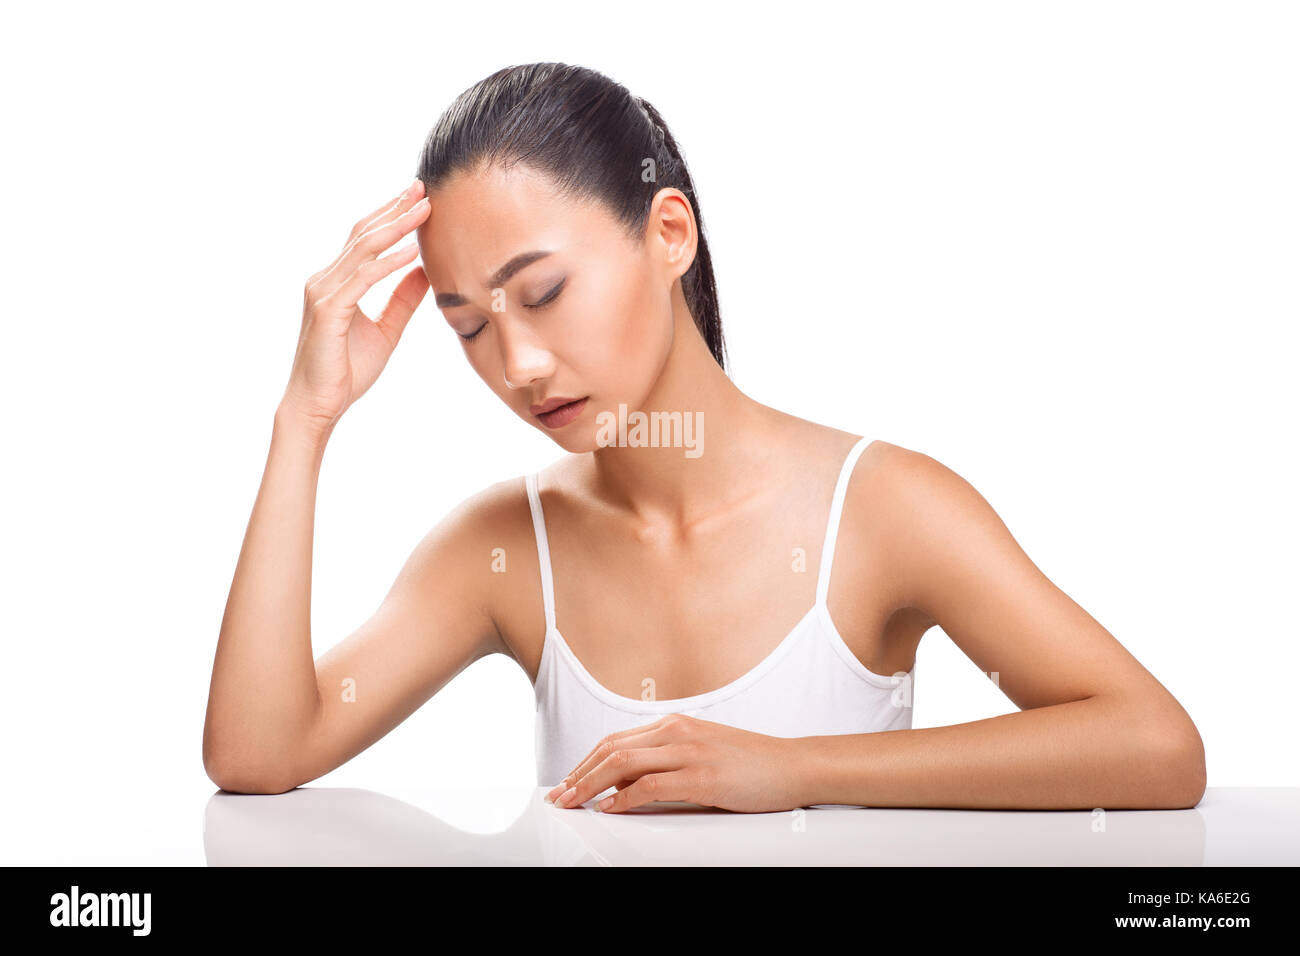 Young Asian woman having headache. Girl siting with sickly look and closed eyes. Expression of emotion pain, stress - Stock Image